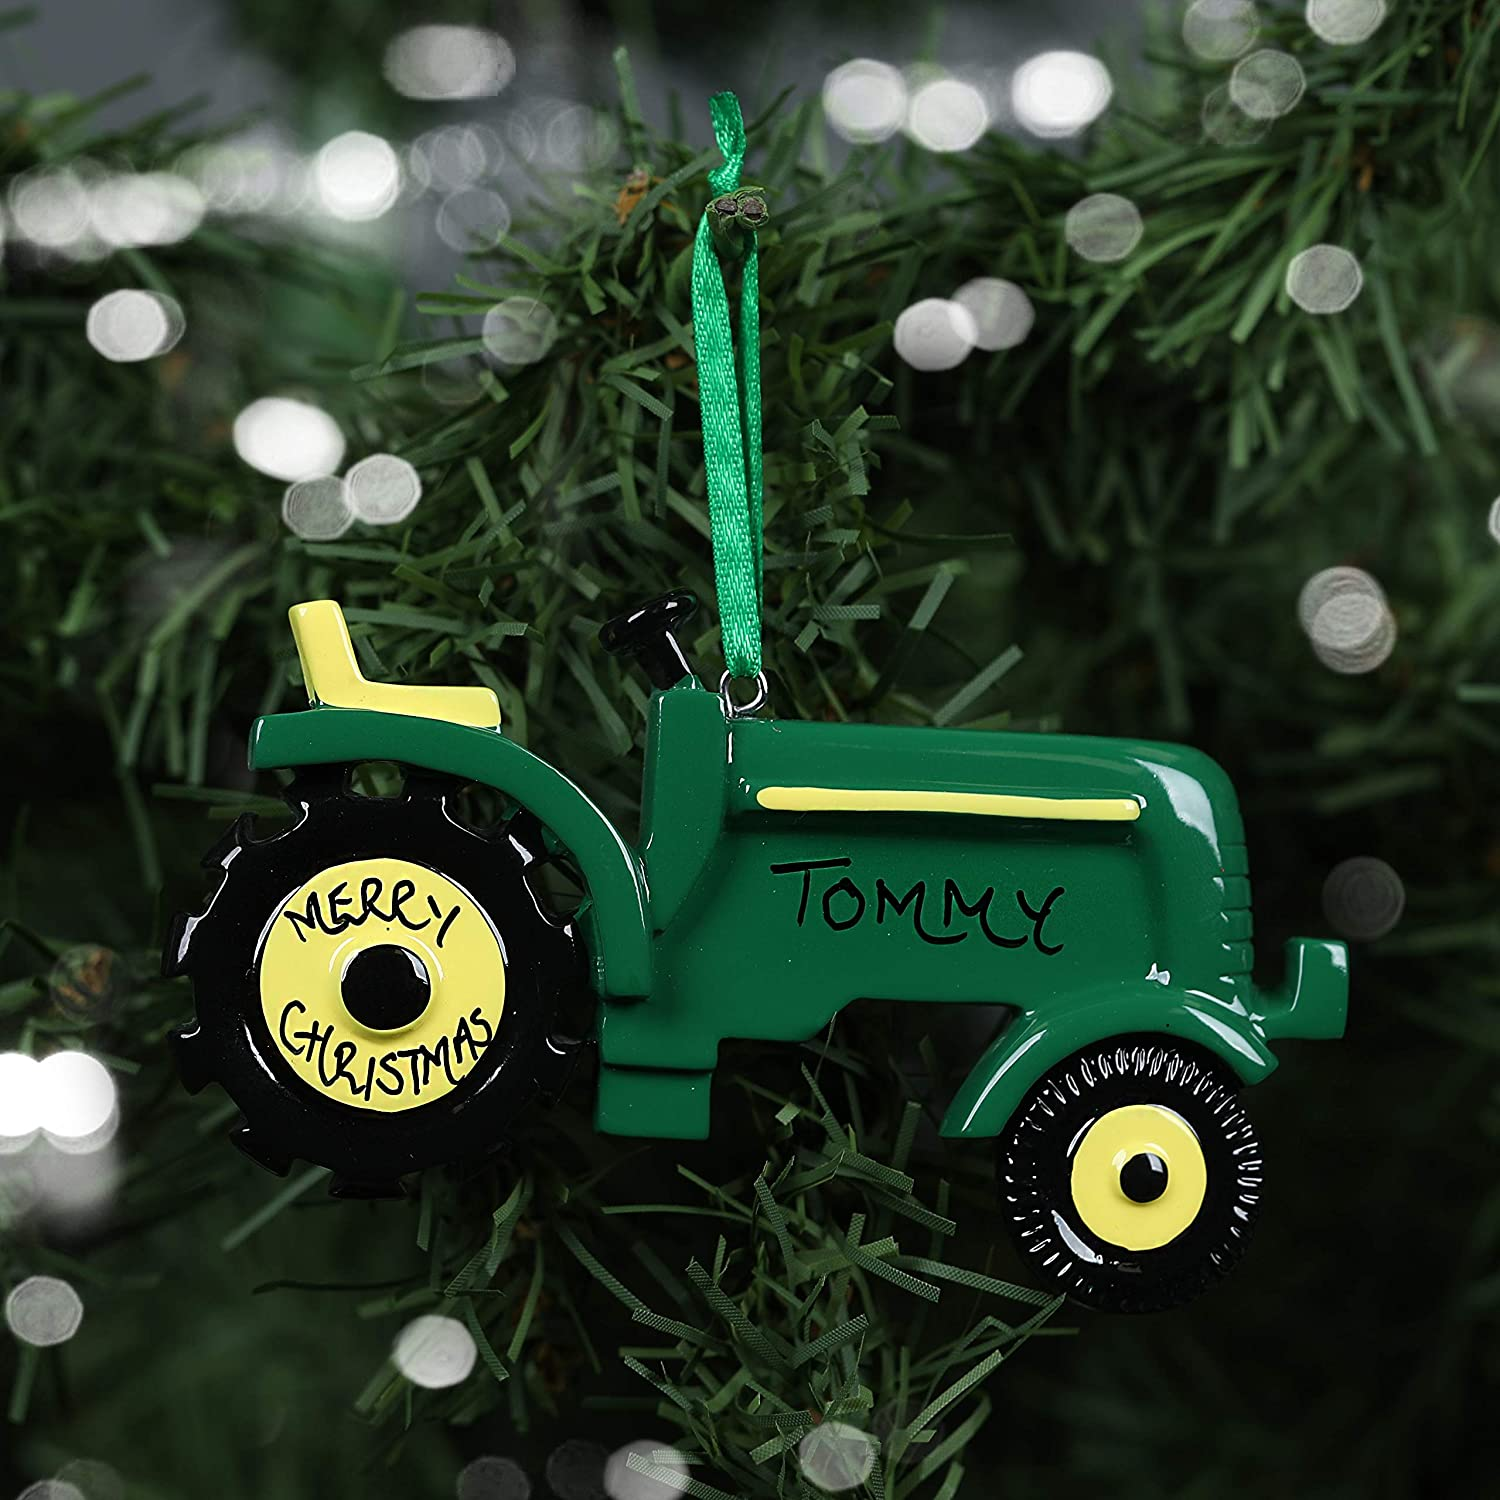 Personalised Hand Crafted Custom Green Tractor Christmas Tree Decorations Xmas Bauble Ornaments Amazon Co Uk Handmade